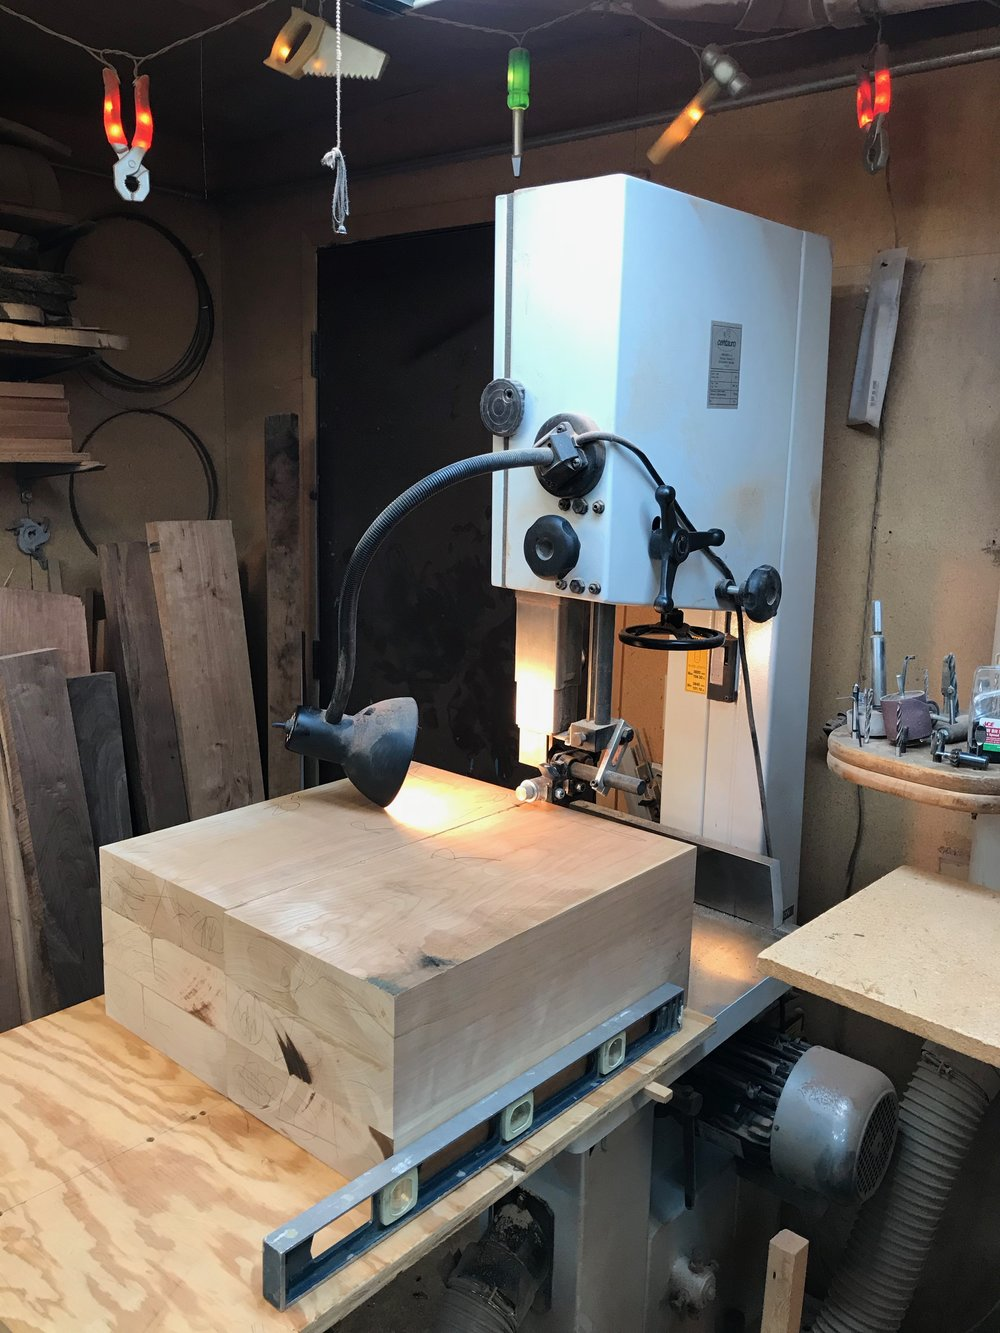 At the bandsaw, being readied for the circle cut.